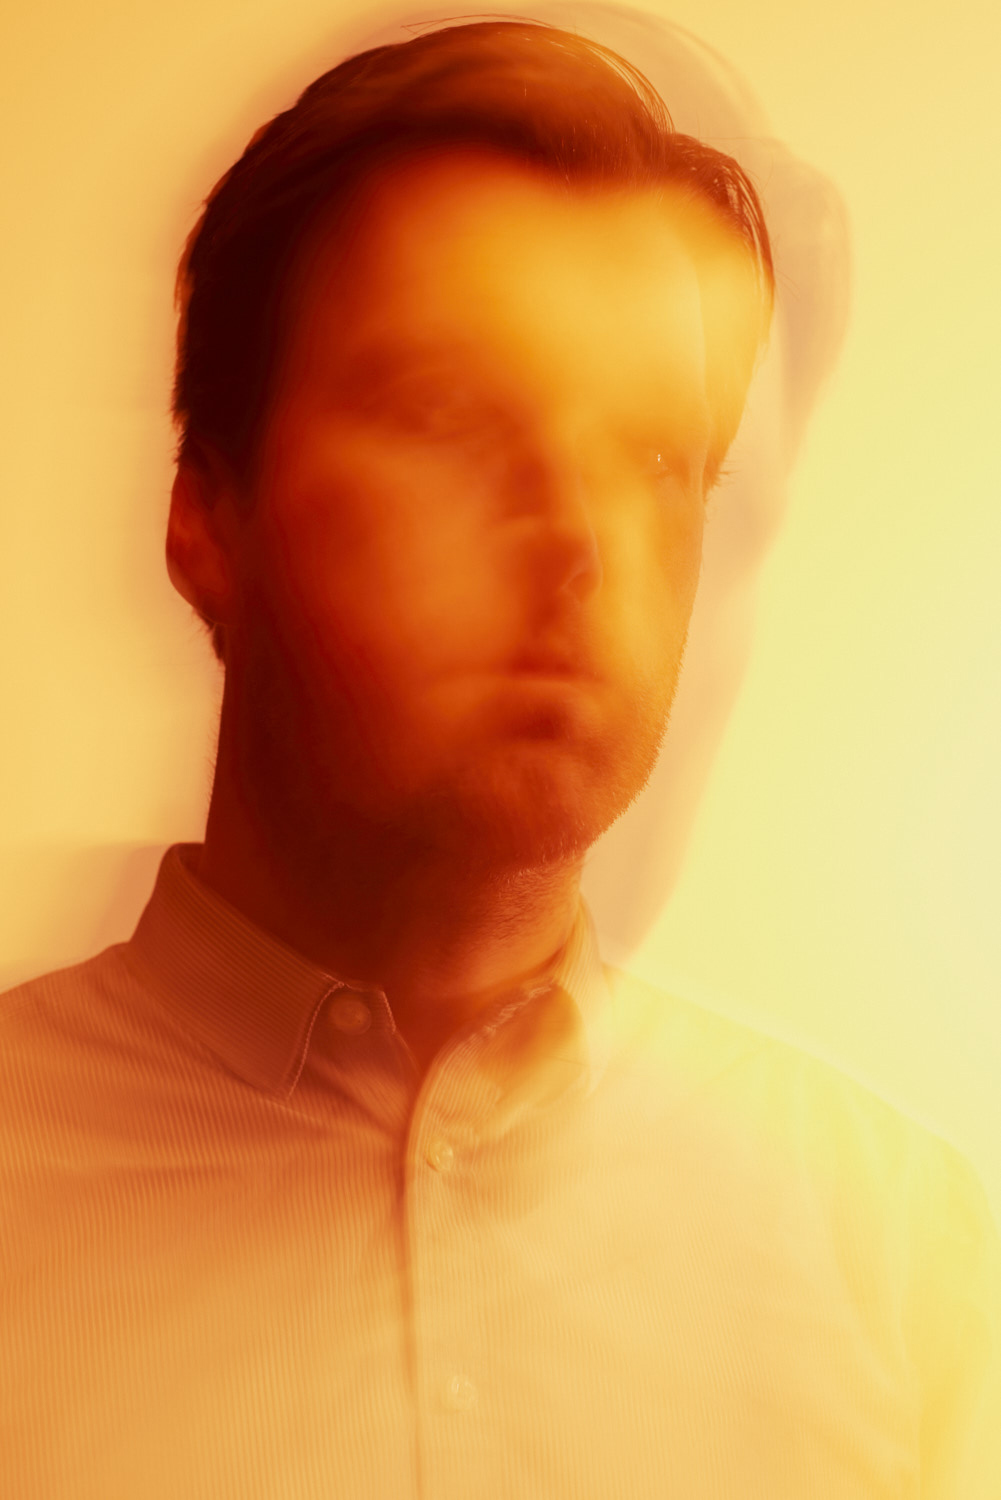 Abstract portrait of a man in yellow gloomy light.